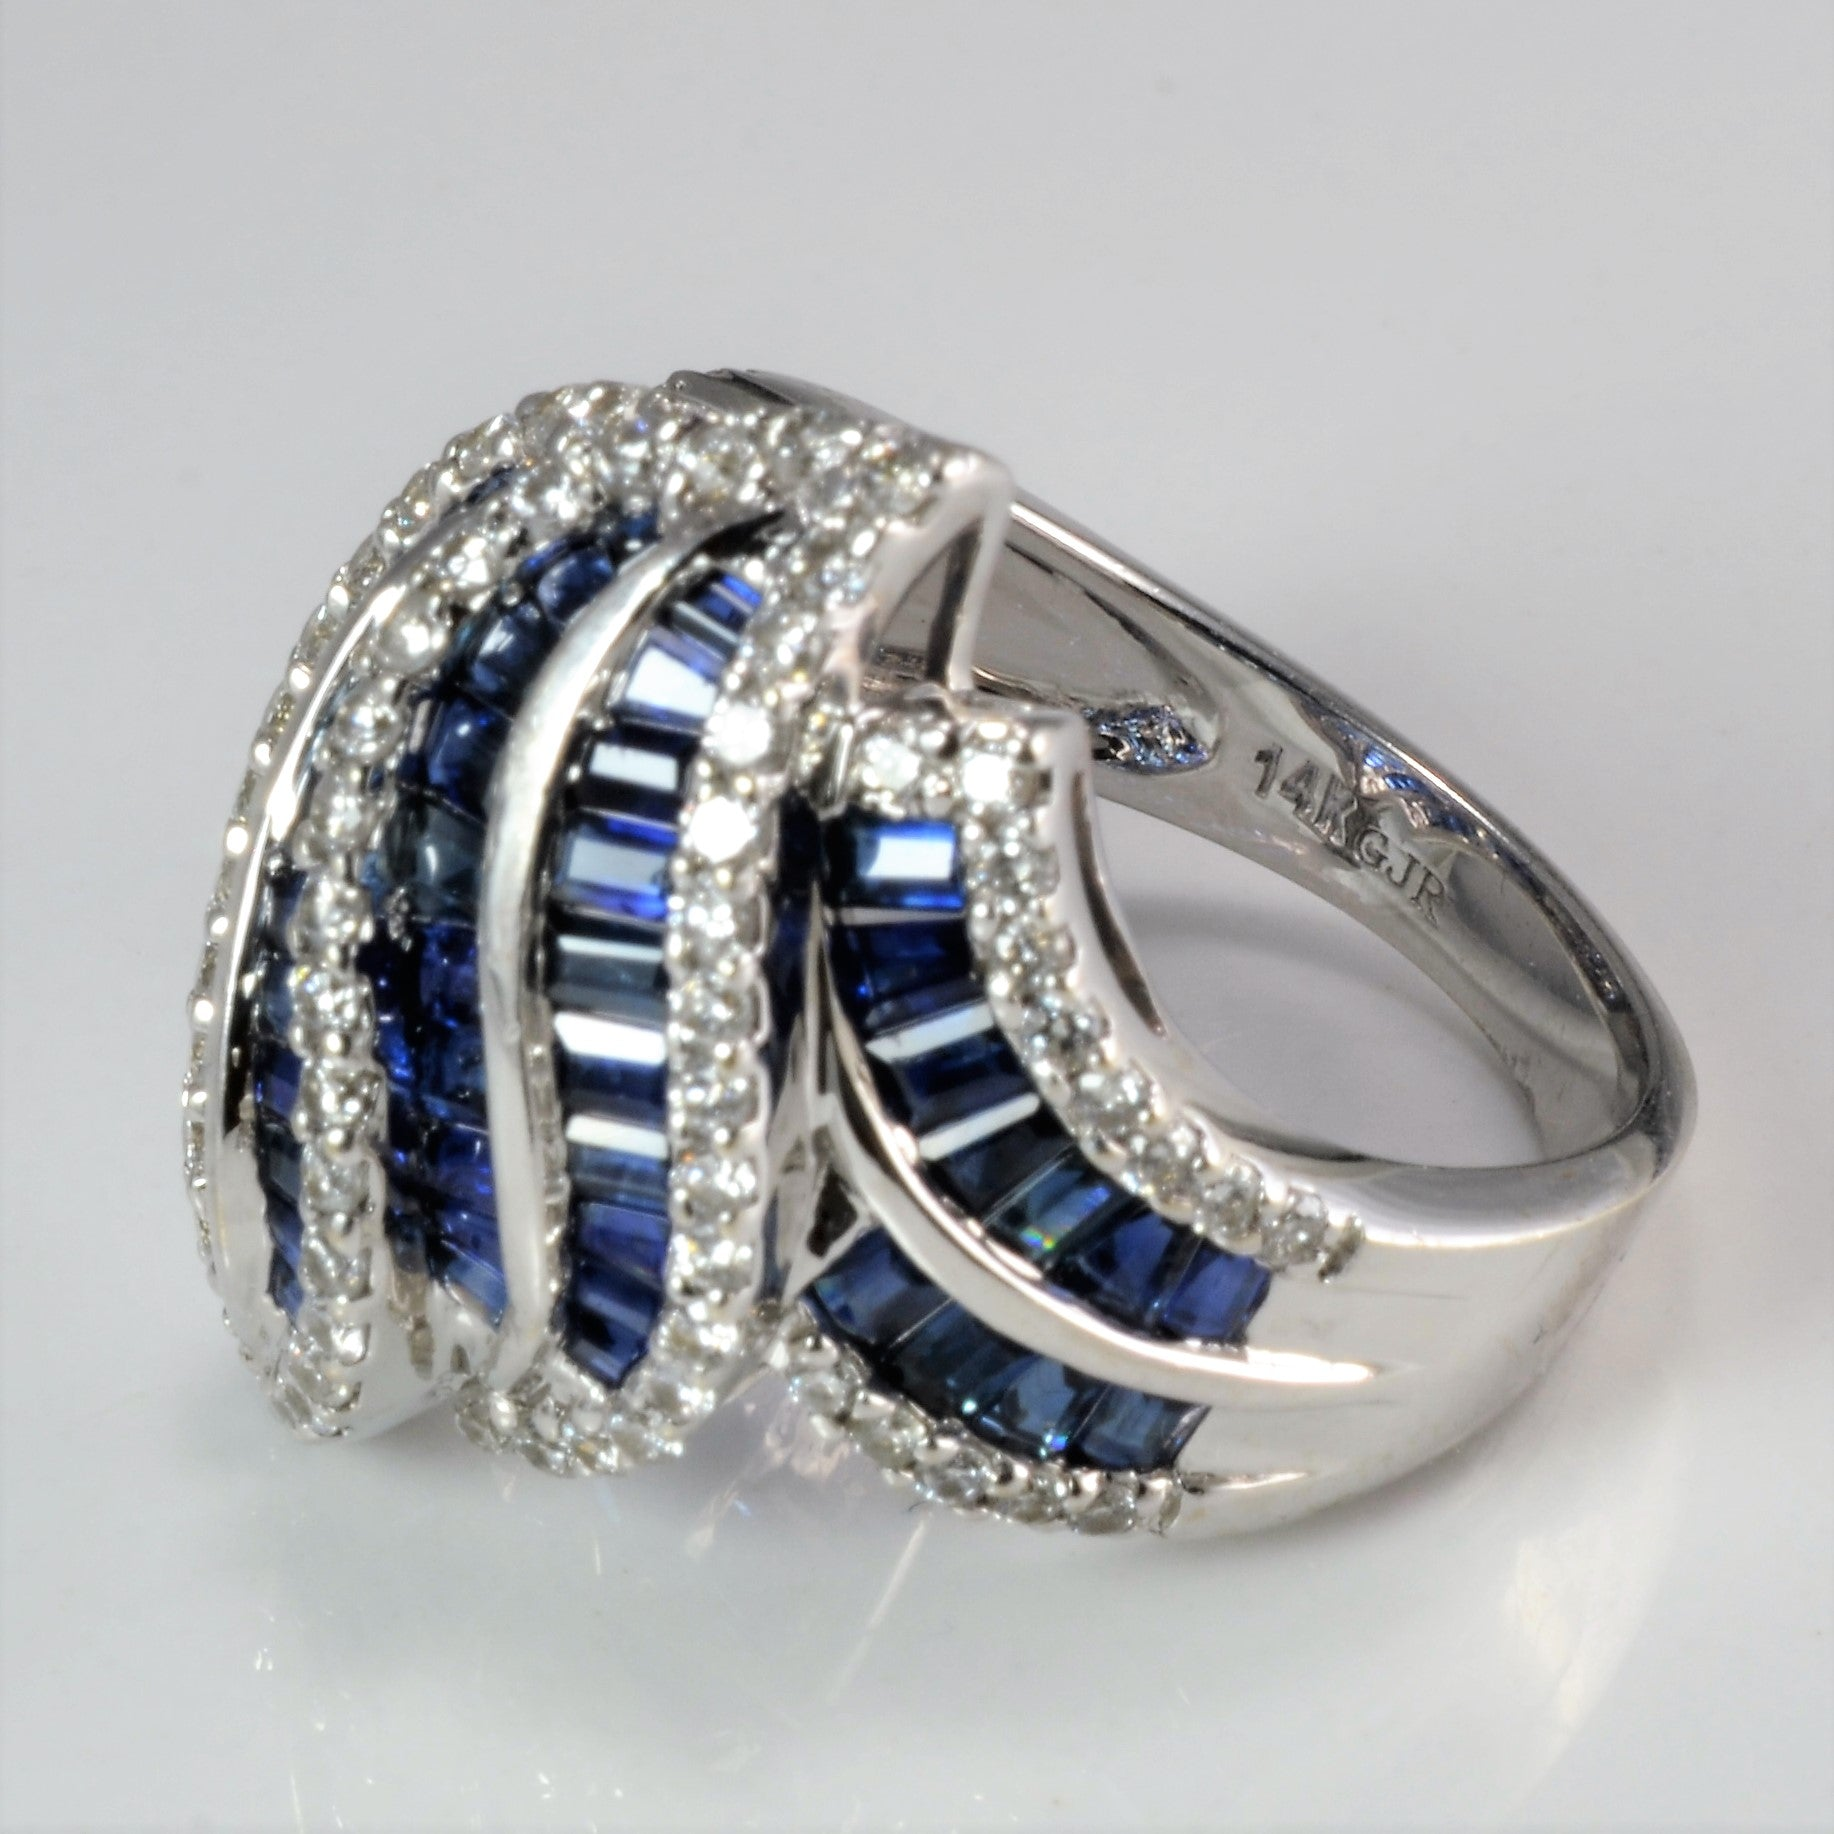 Pave Diamond & Sapphire Ladies Dome Ring | 0.70 ctw, SZ 7.25 |